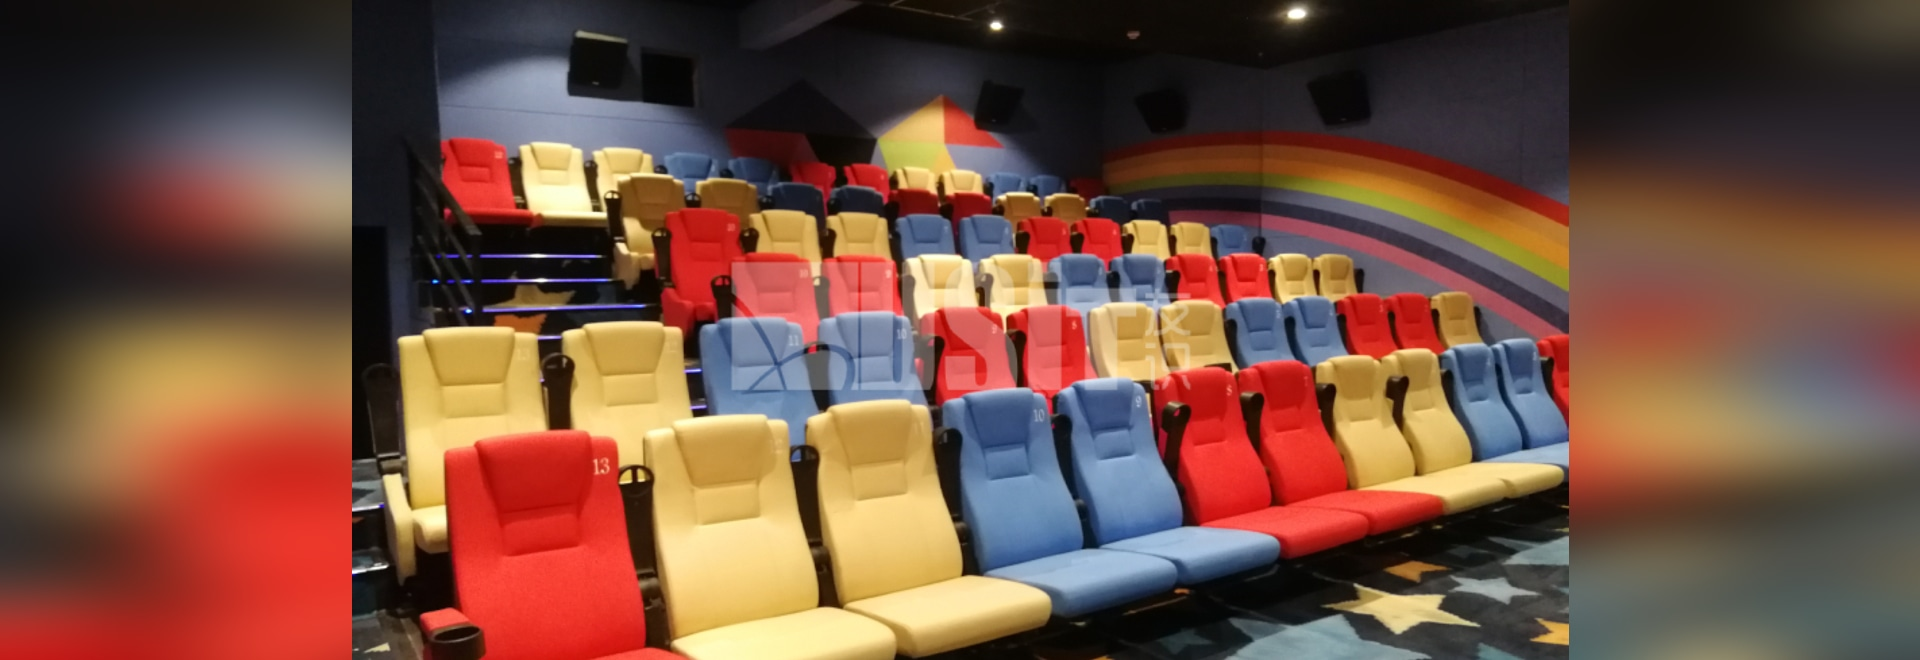 Usit Seating in Cinema / Theater of Suizhou, China